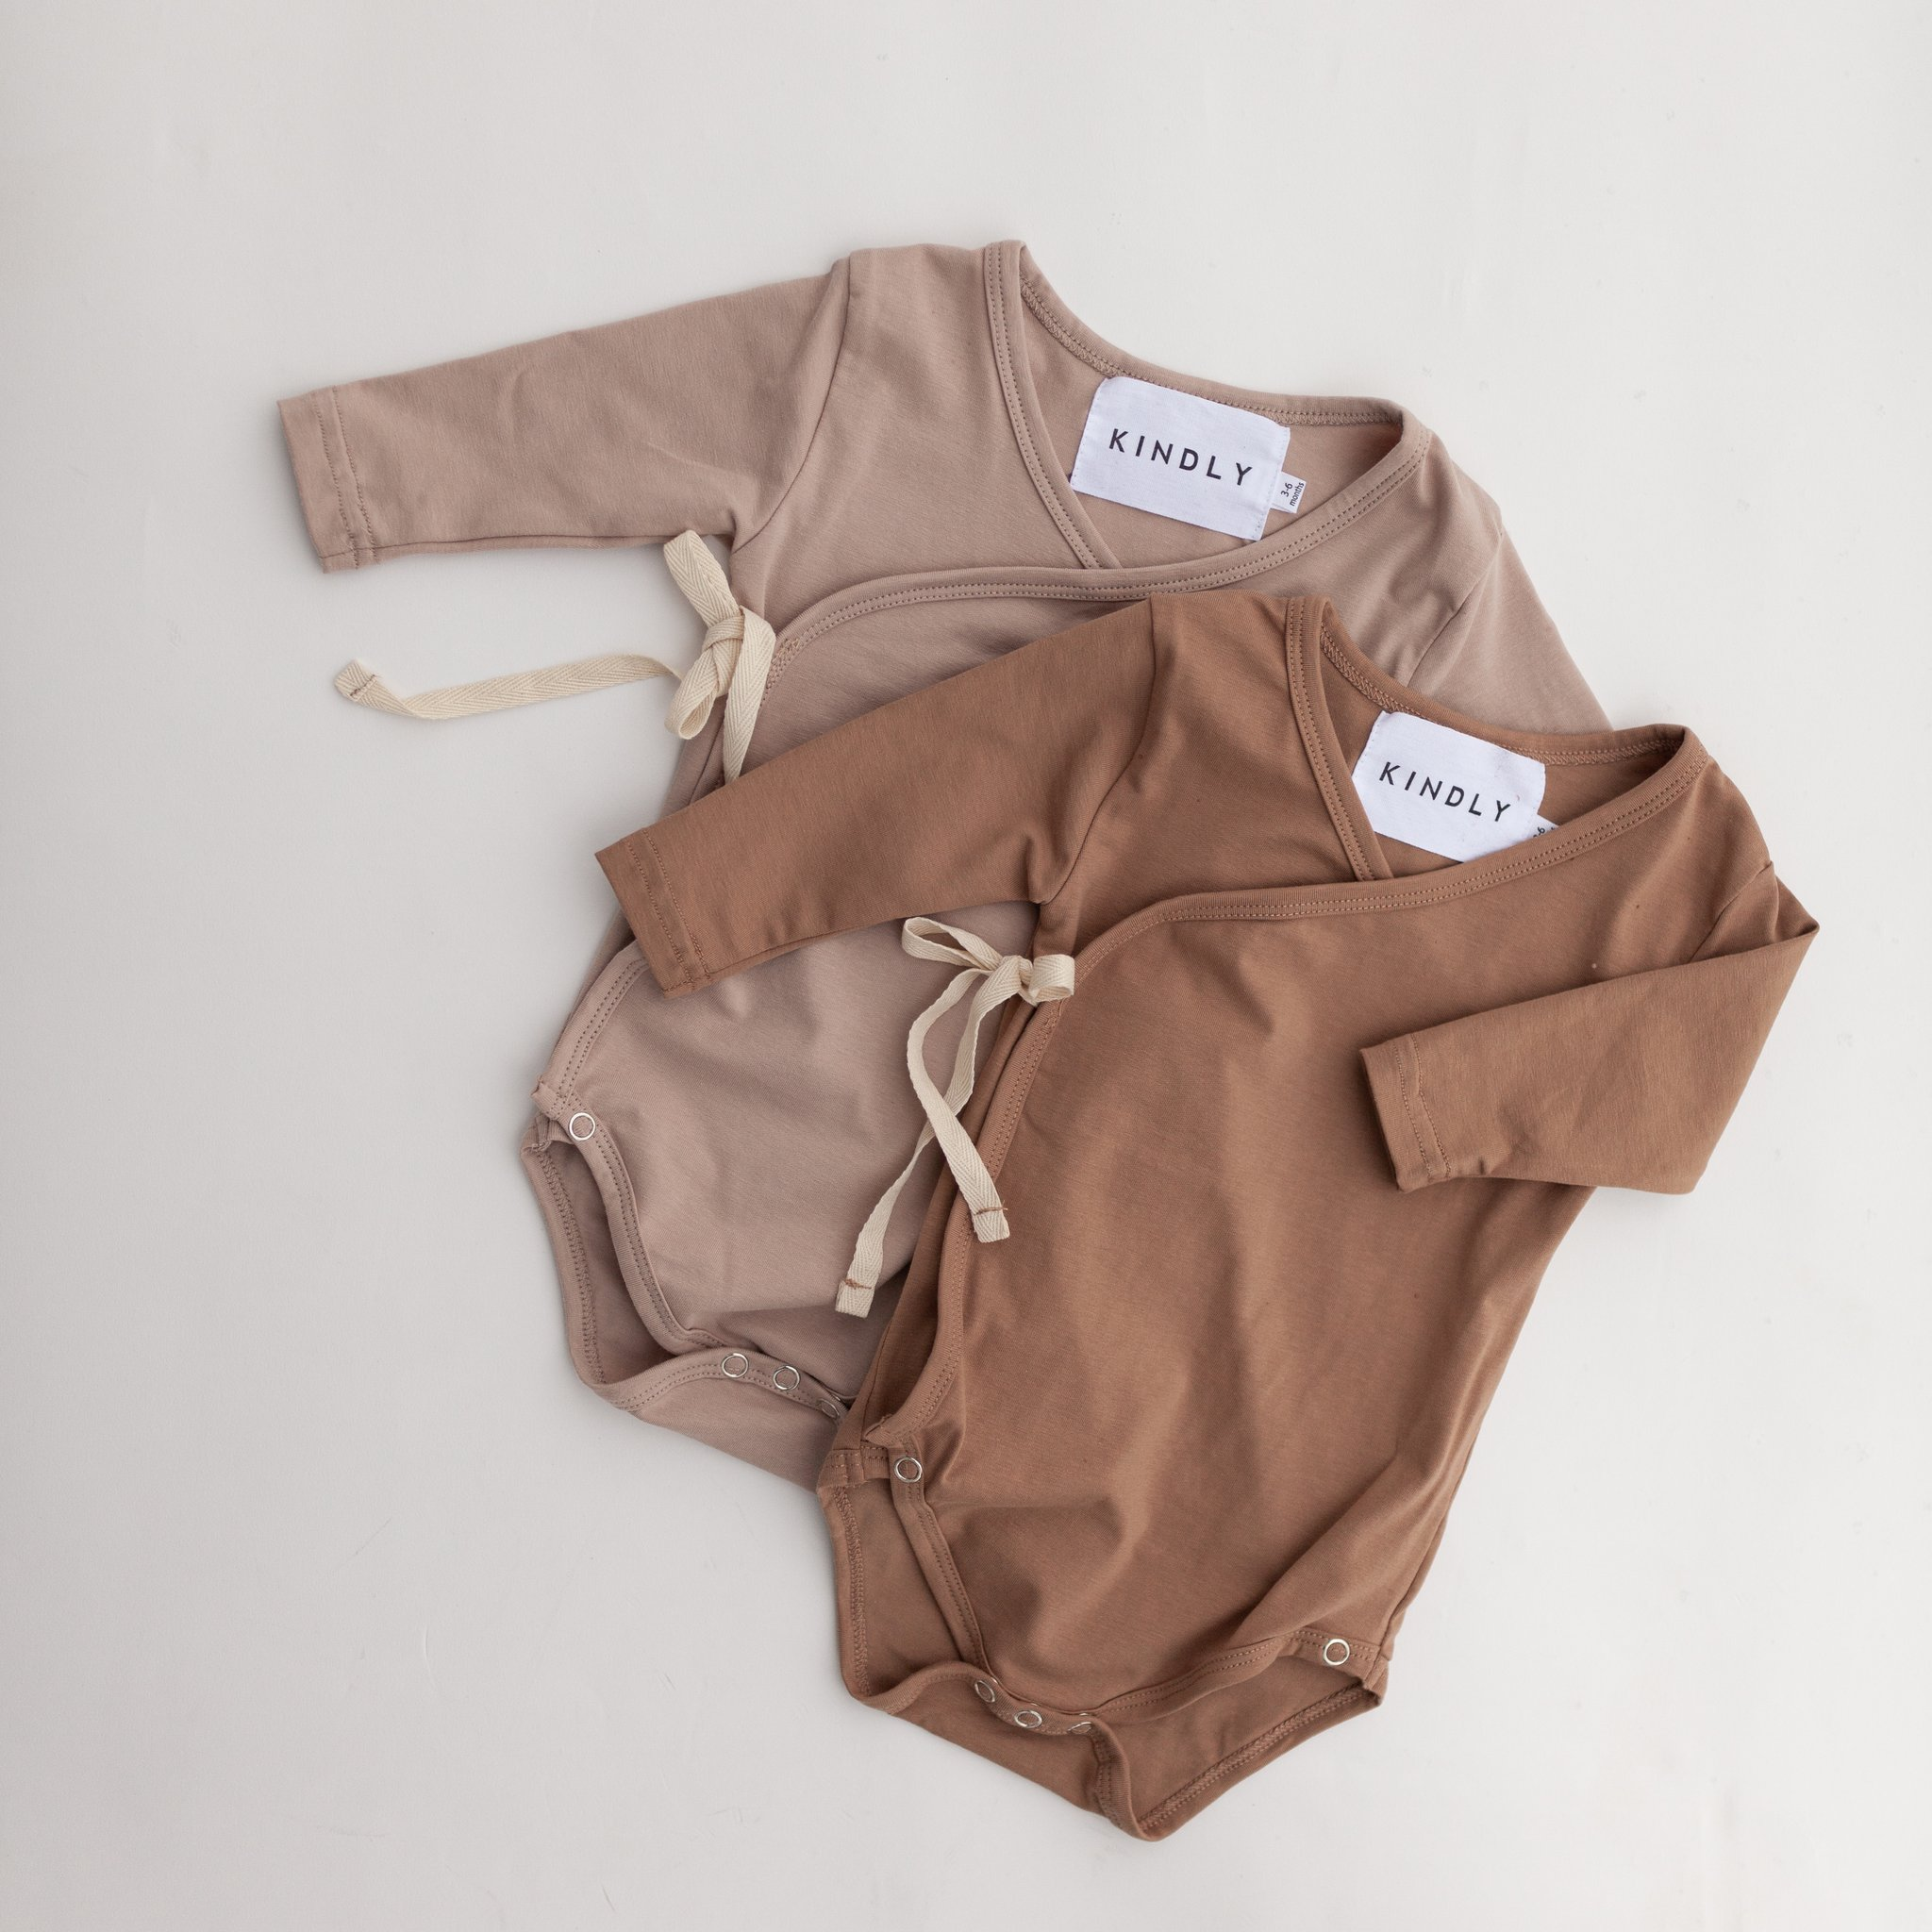 KINDLY (tidligere Fieldday) Kimono onesie - Cappuccino & Light Mocca -